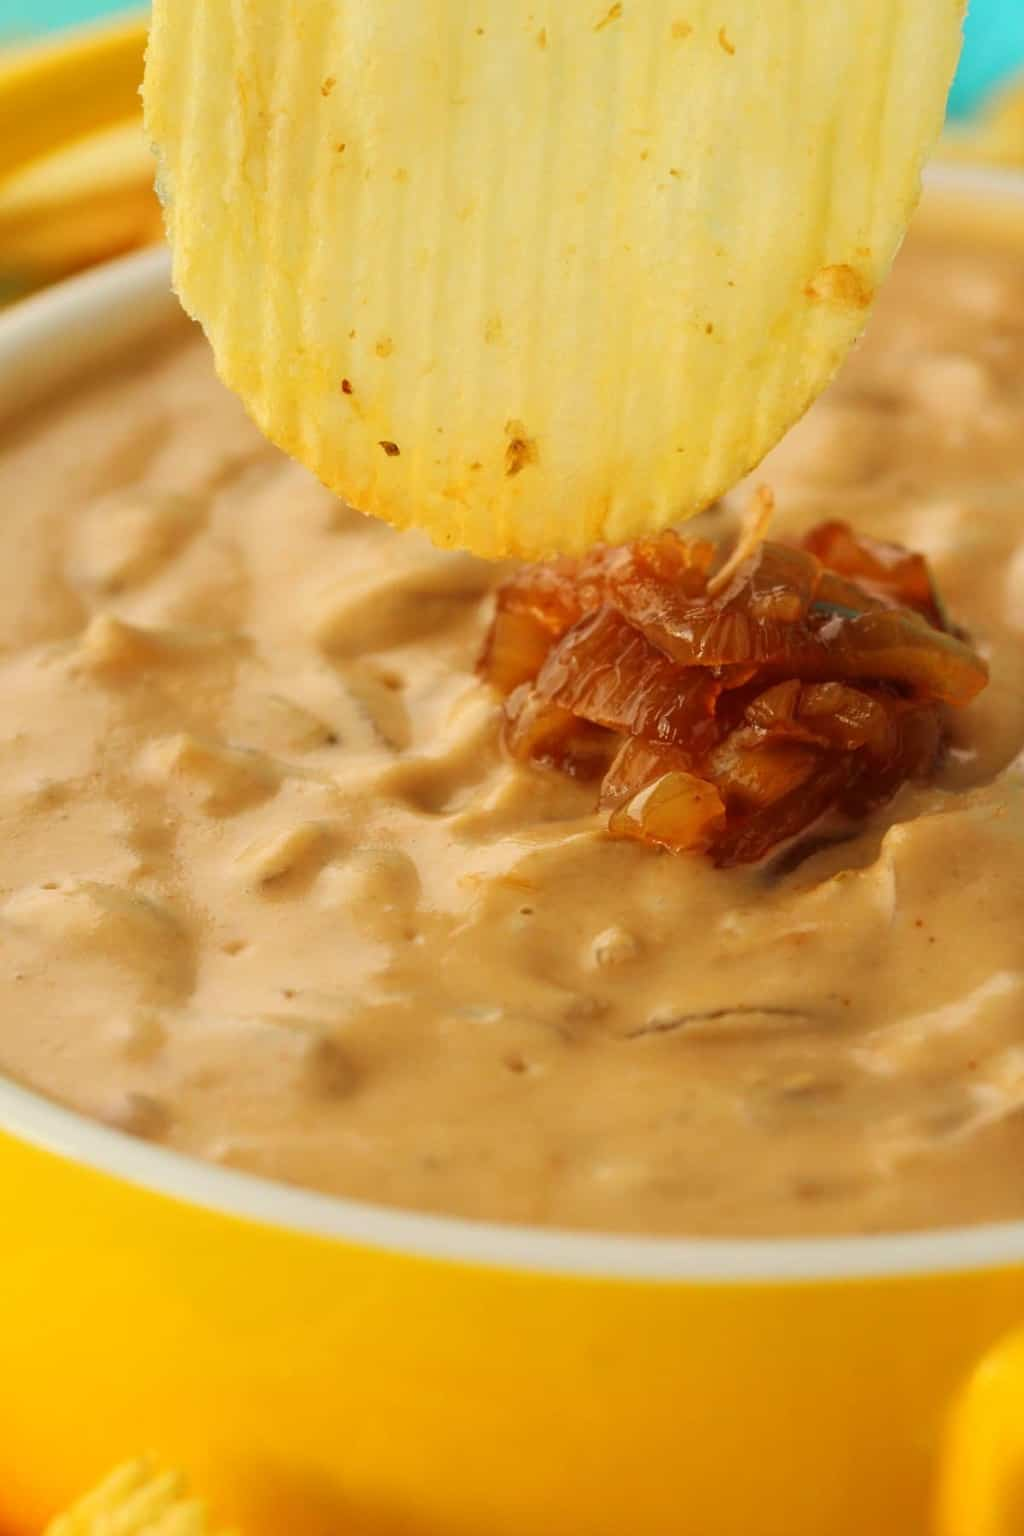 A chip dipping into a bowl of vegan onion dip.